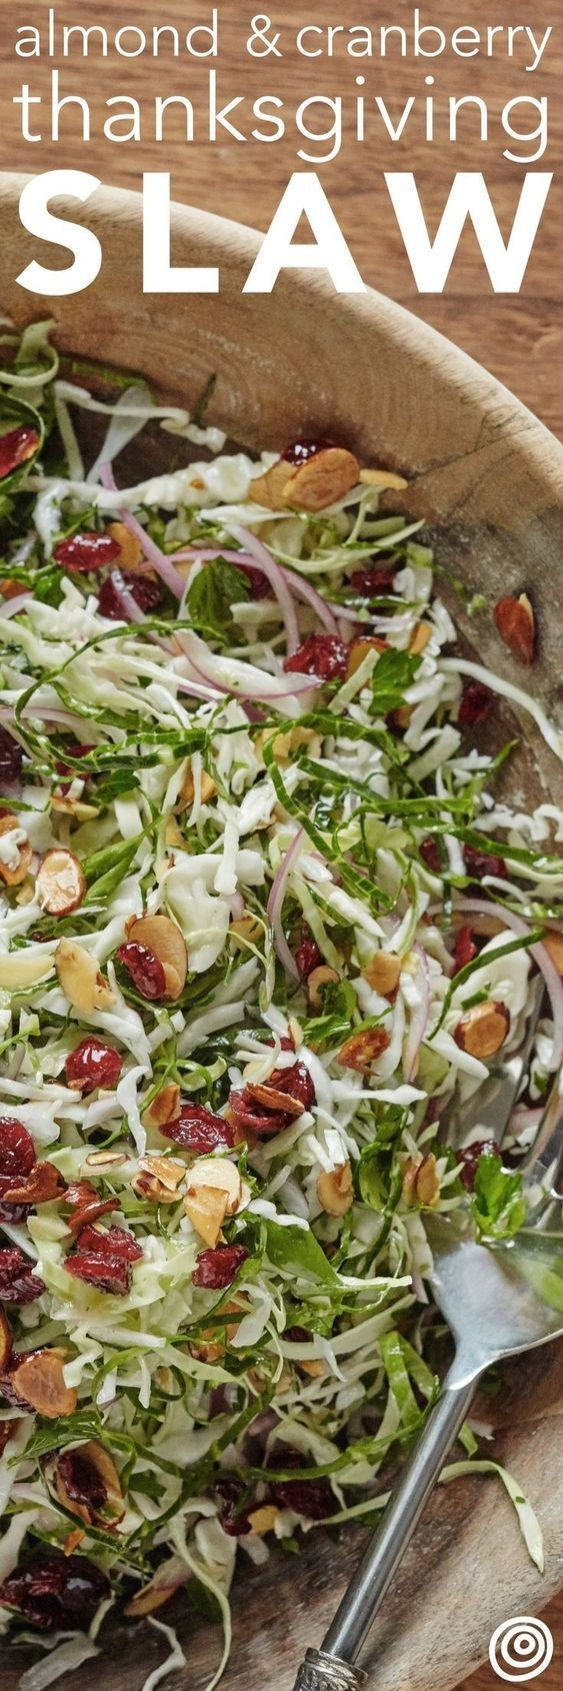 15 Drool Worthy Thanksgiving recipes for your dinner party! Explore updated & traditional Thanksgiving recipes, like this vegan Thanksgiving slaw recipe. Click to get more cooking inspiration for Thanksgiving food, side dishes and find some stuffing recipes for Thanksgiving. #thanksgivingrecipes #thanksgivingsidedishes #thanksgivingsidedishrecipes